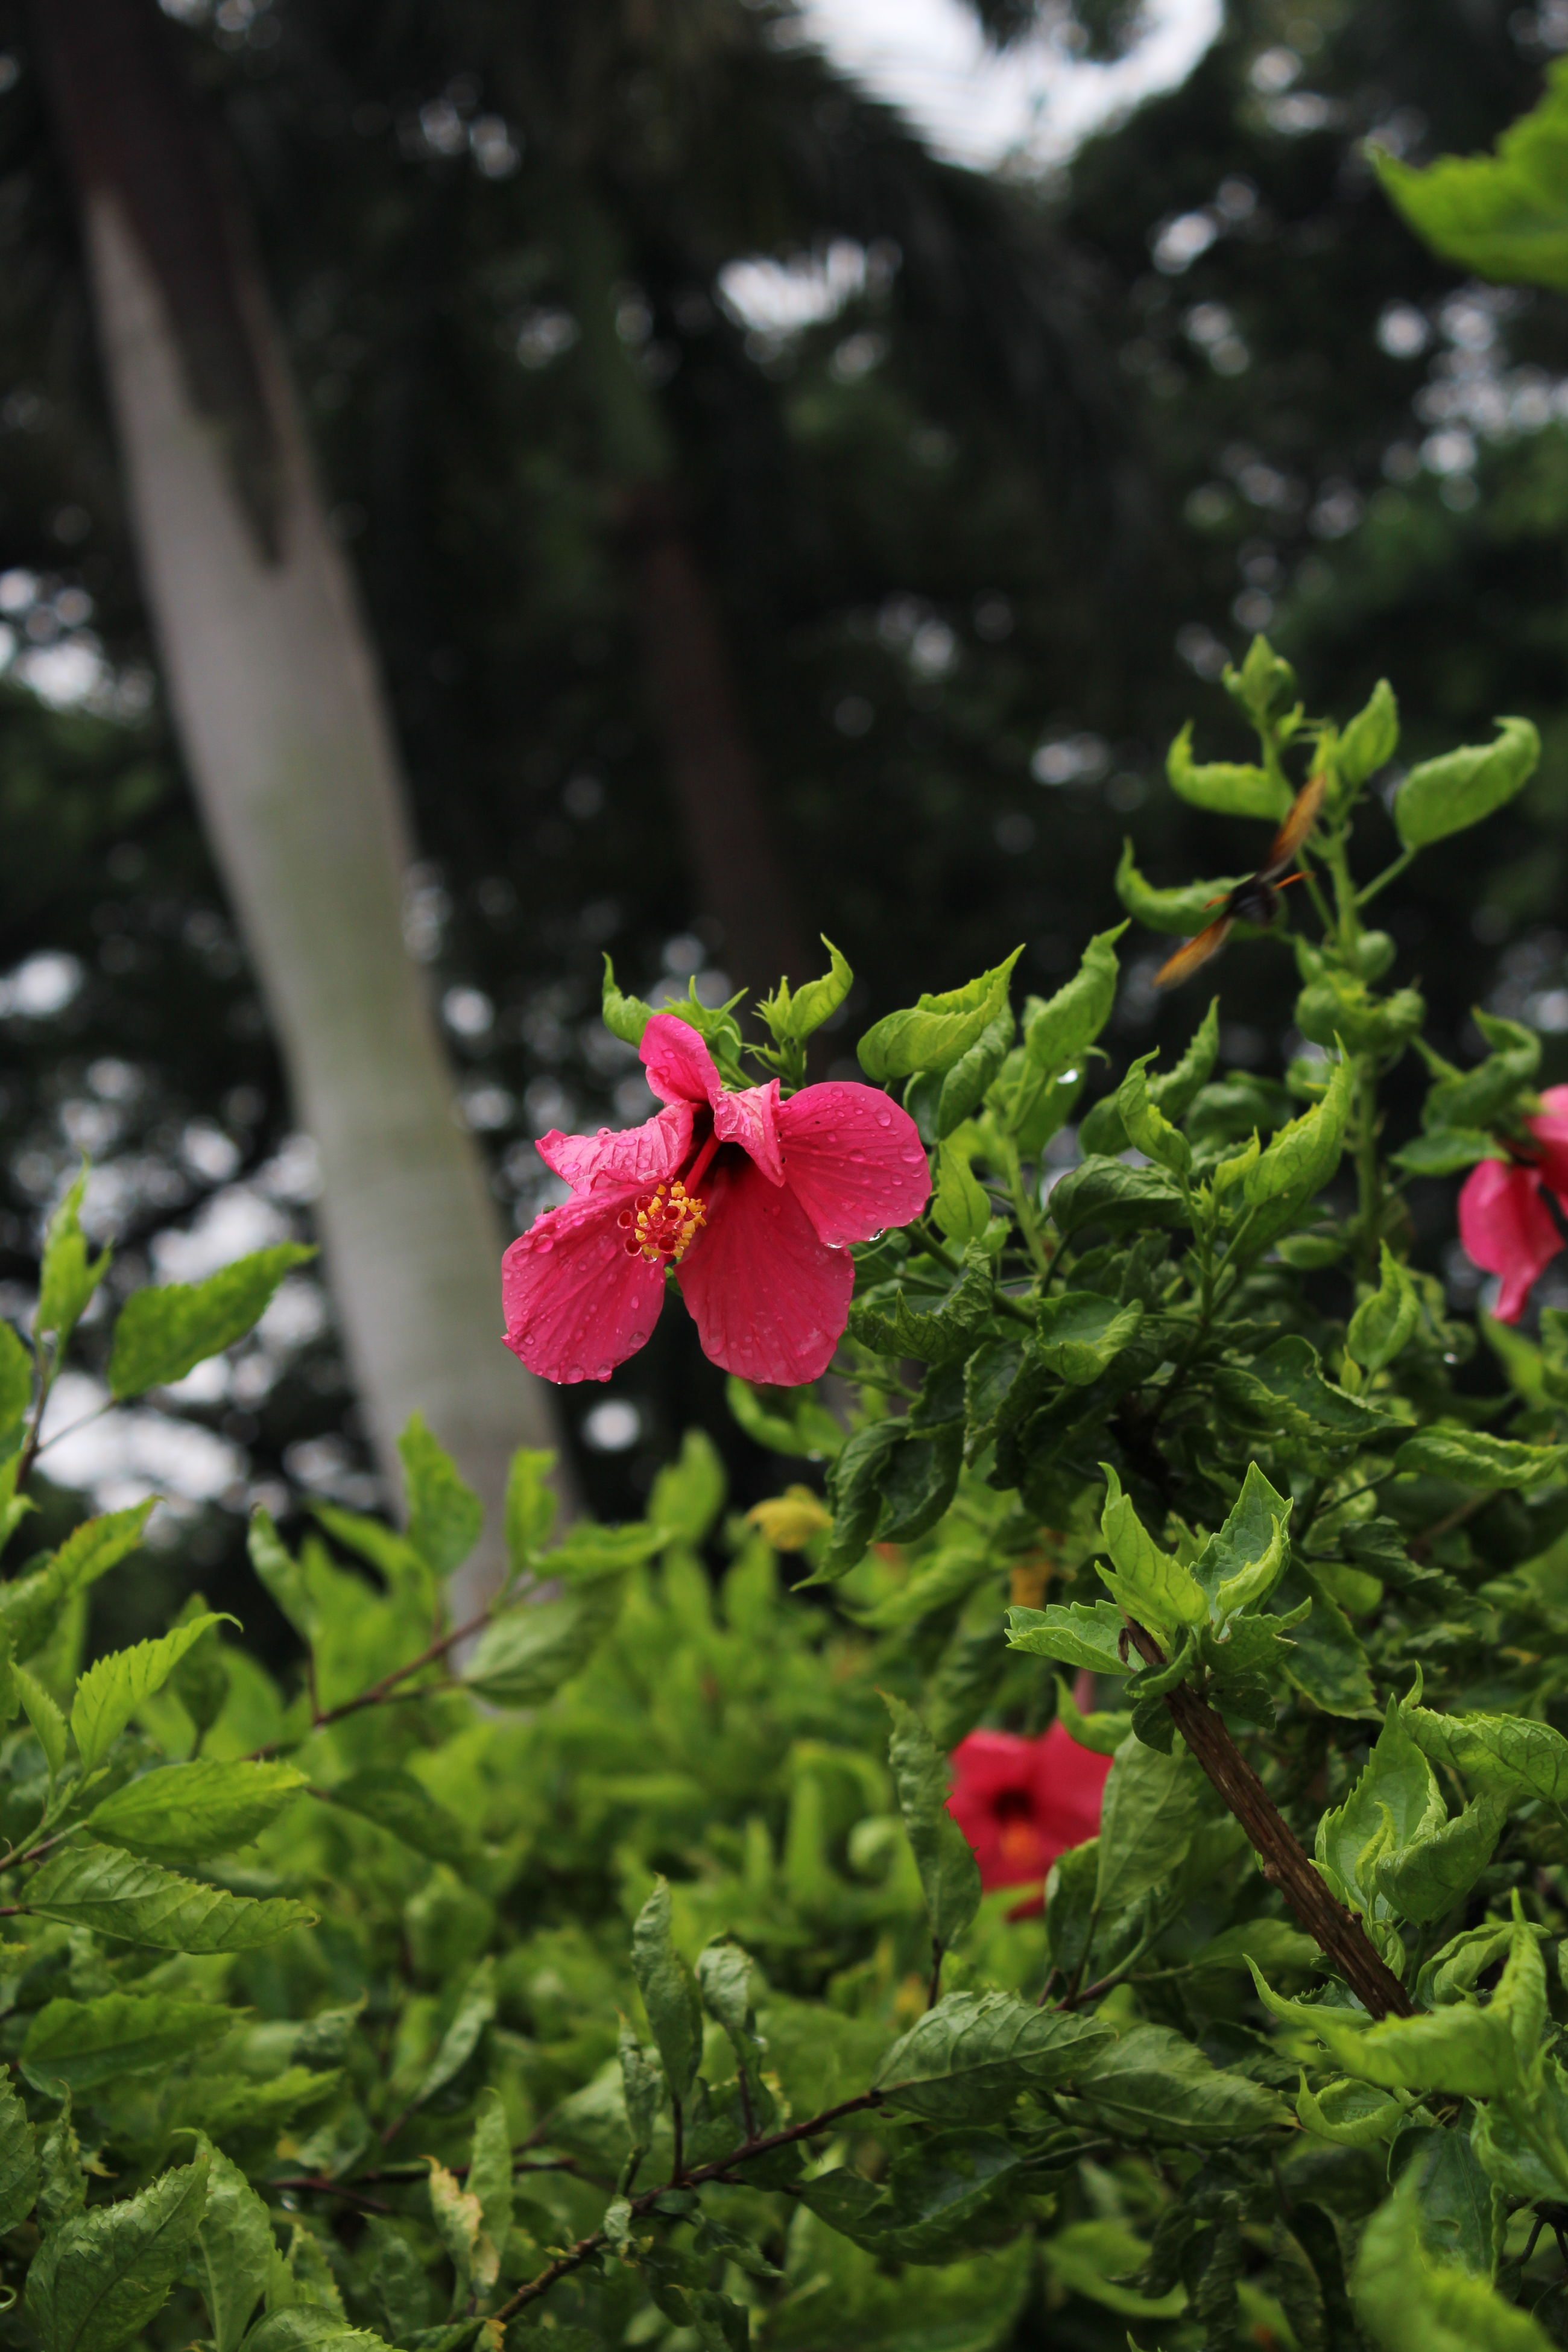 flower, freshness, growth, petal, pink color, fragility, leaf, beauty in nature, flower head, plant, blooming, nature, green color, focus on foreground, in bloom, pink, close-up, blossom, park - man made space, outdoors